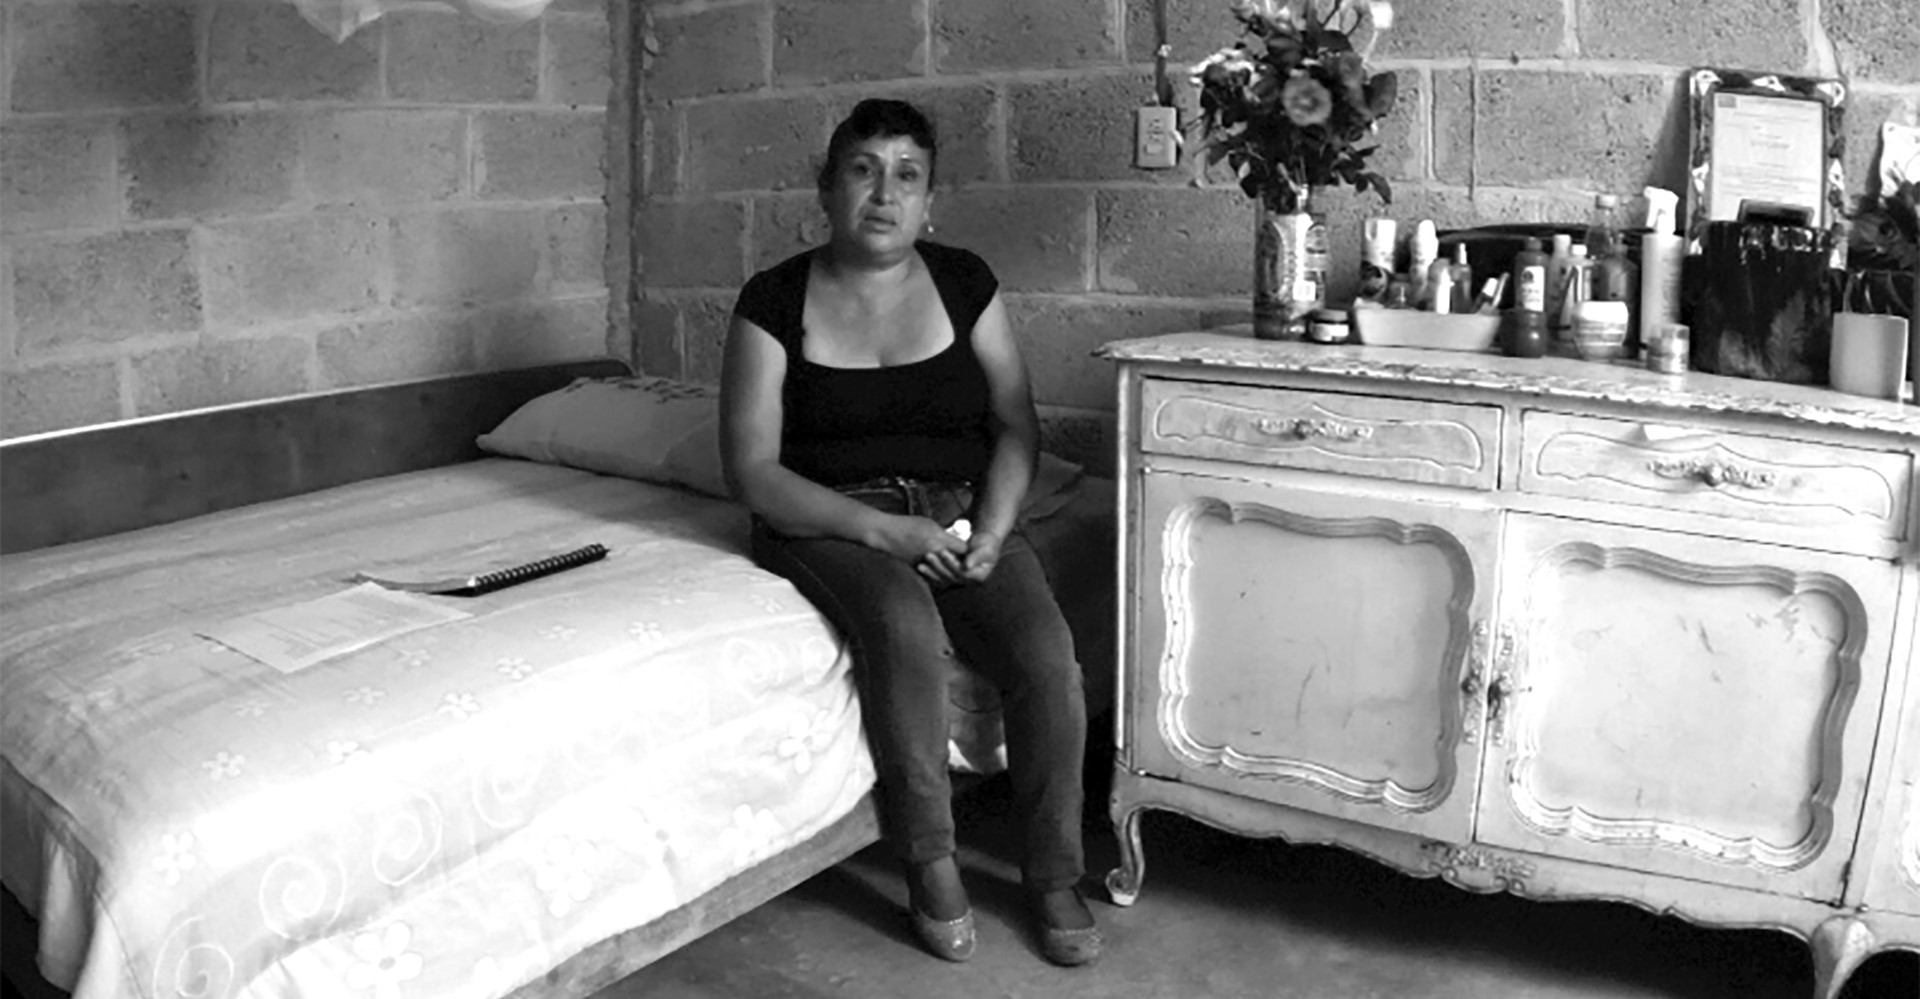 Premature deaths and prison violences in Mexico: imprisoned Indigenous women and structural racism